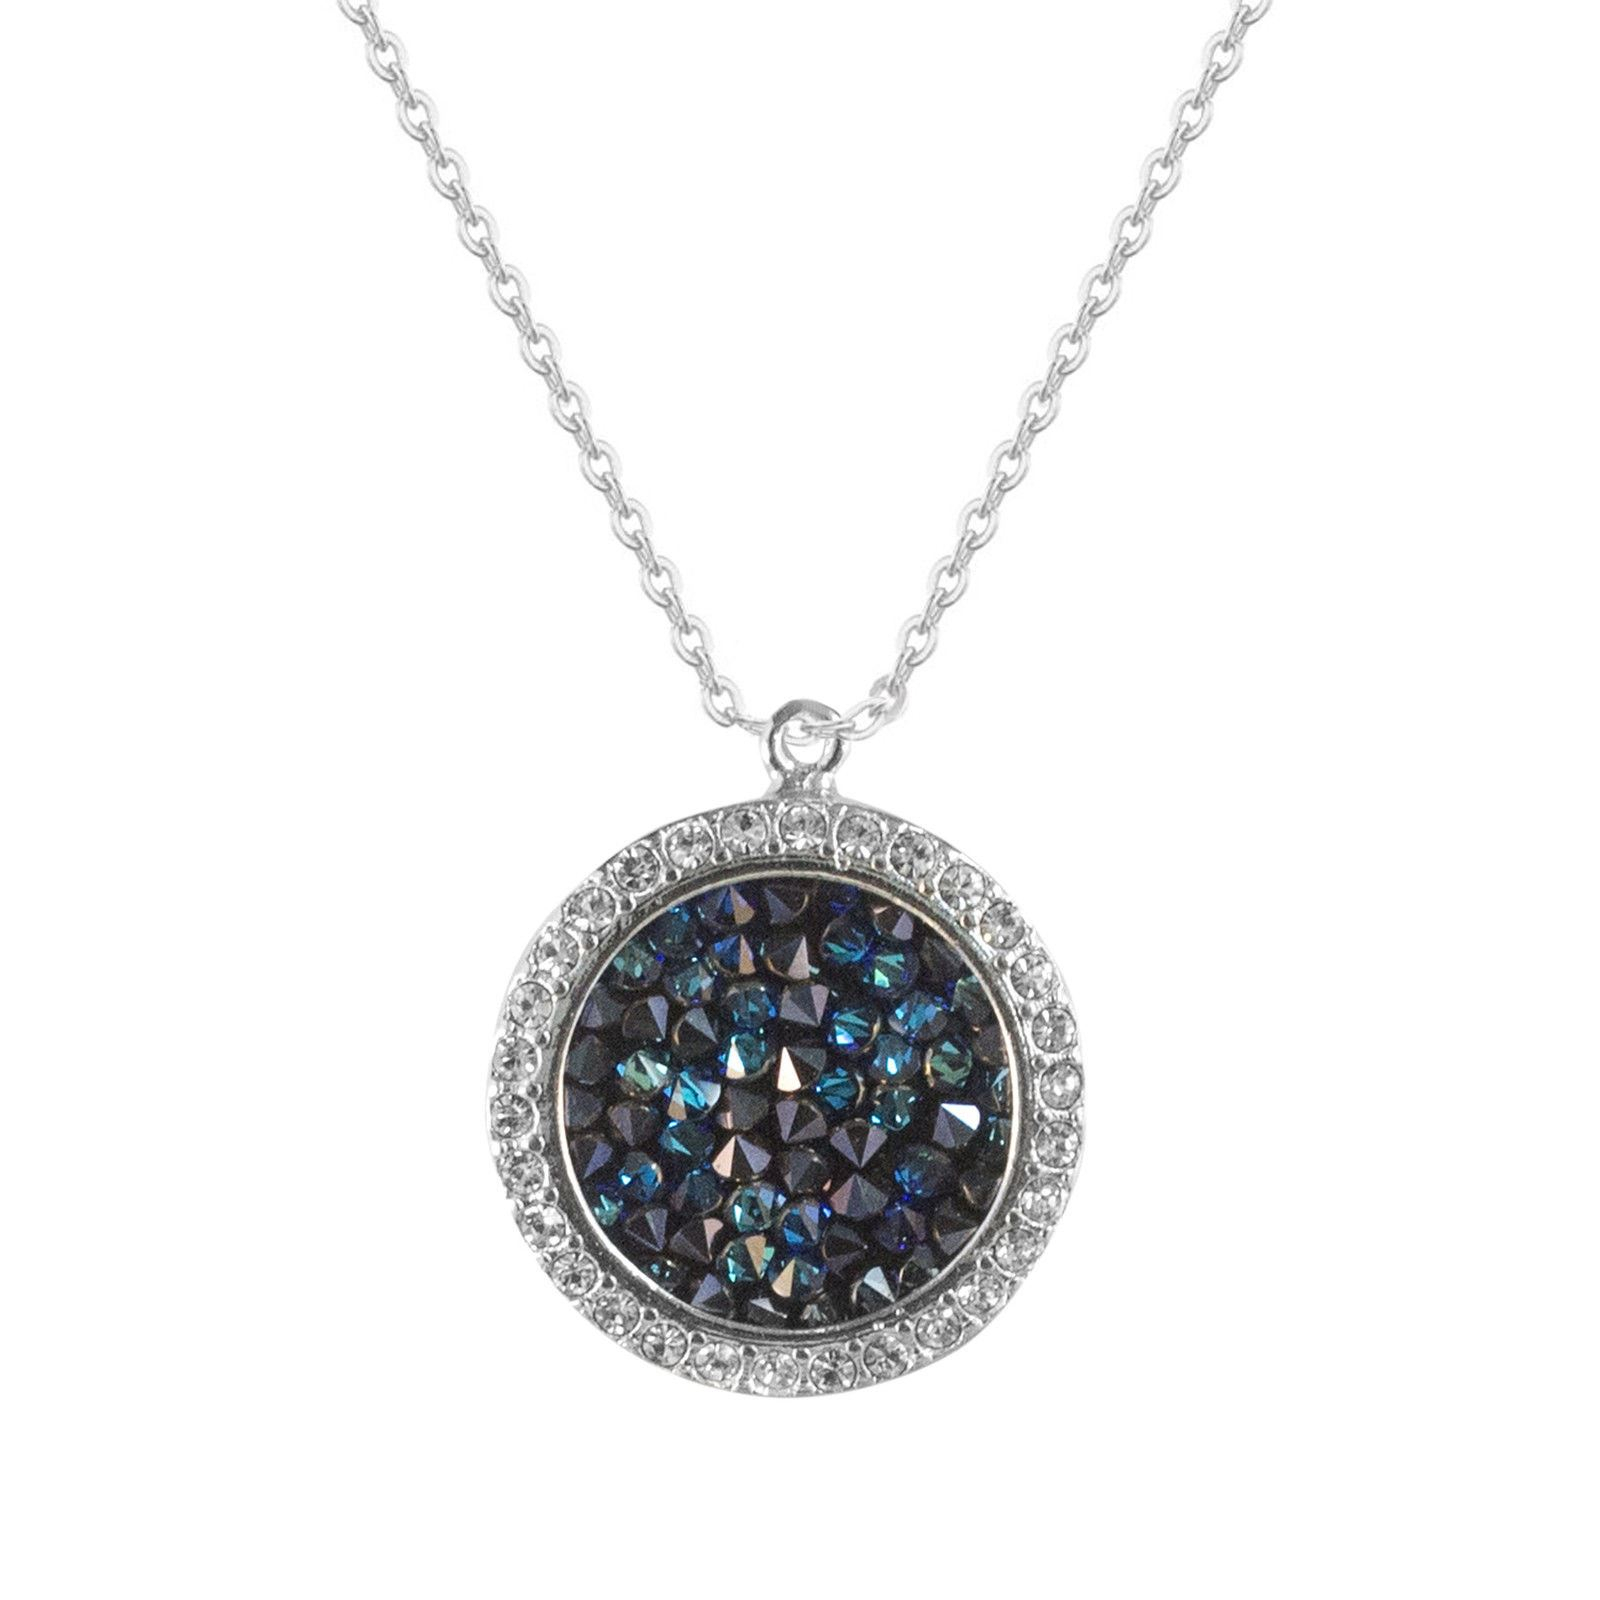 Details About Blue Swarovski Element Crystals 14K Silver Solitaire Drops Necklace Earrings Set In Recent Shimmering Snowflake Locket Element Necklaces (View 24 of 25)